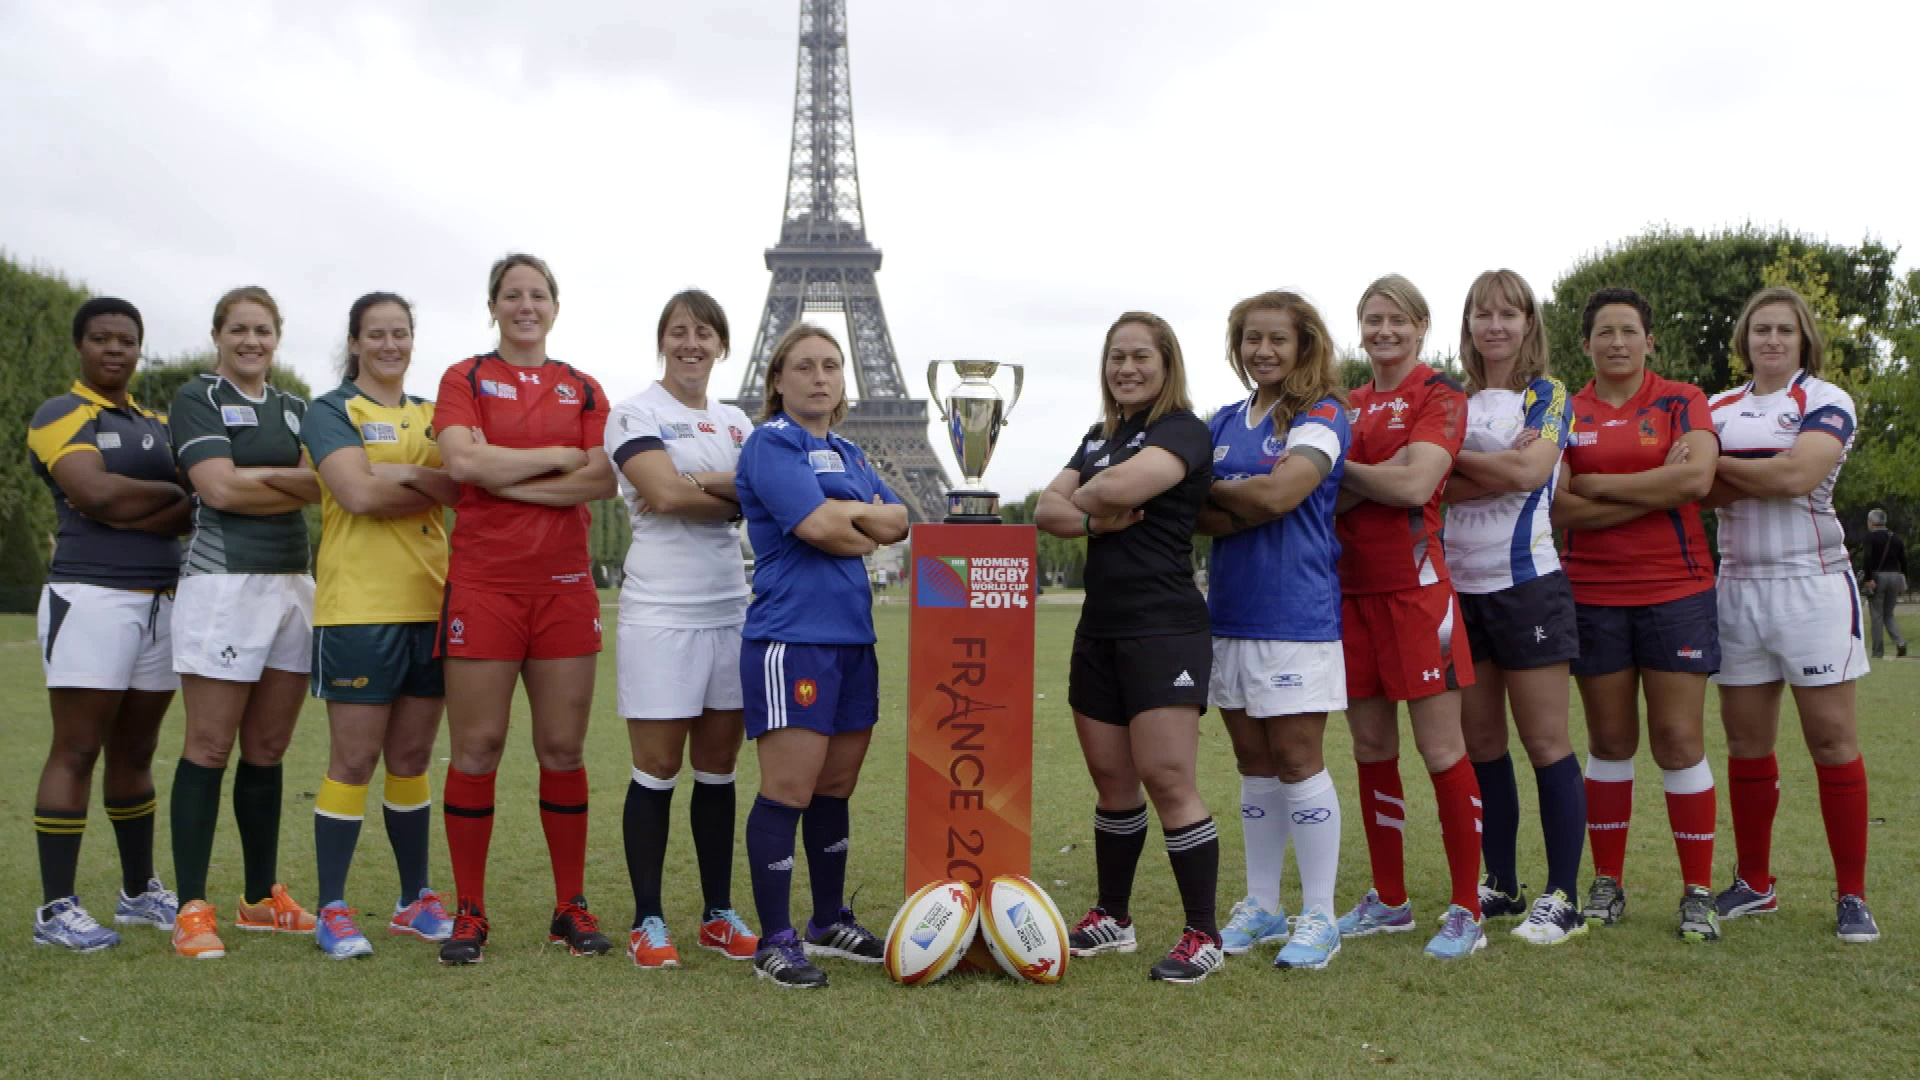 Women's Rugby World Cup 2014 Official preview